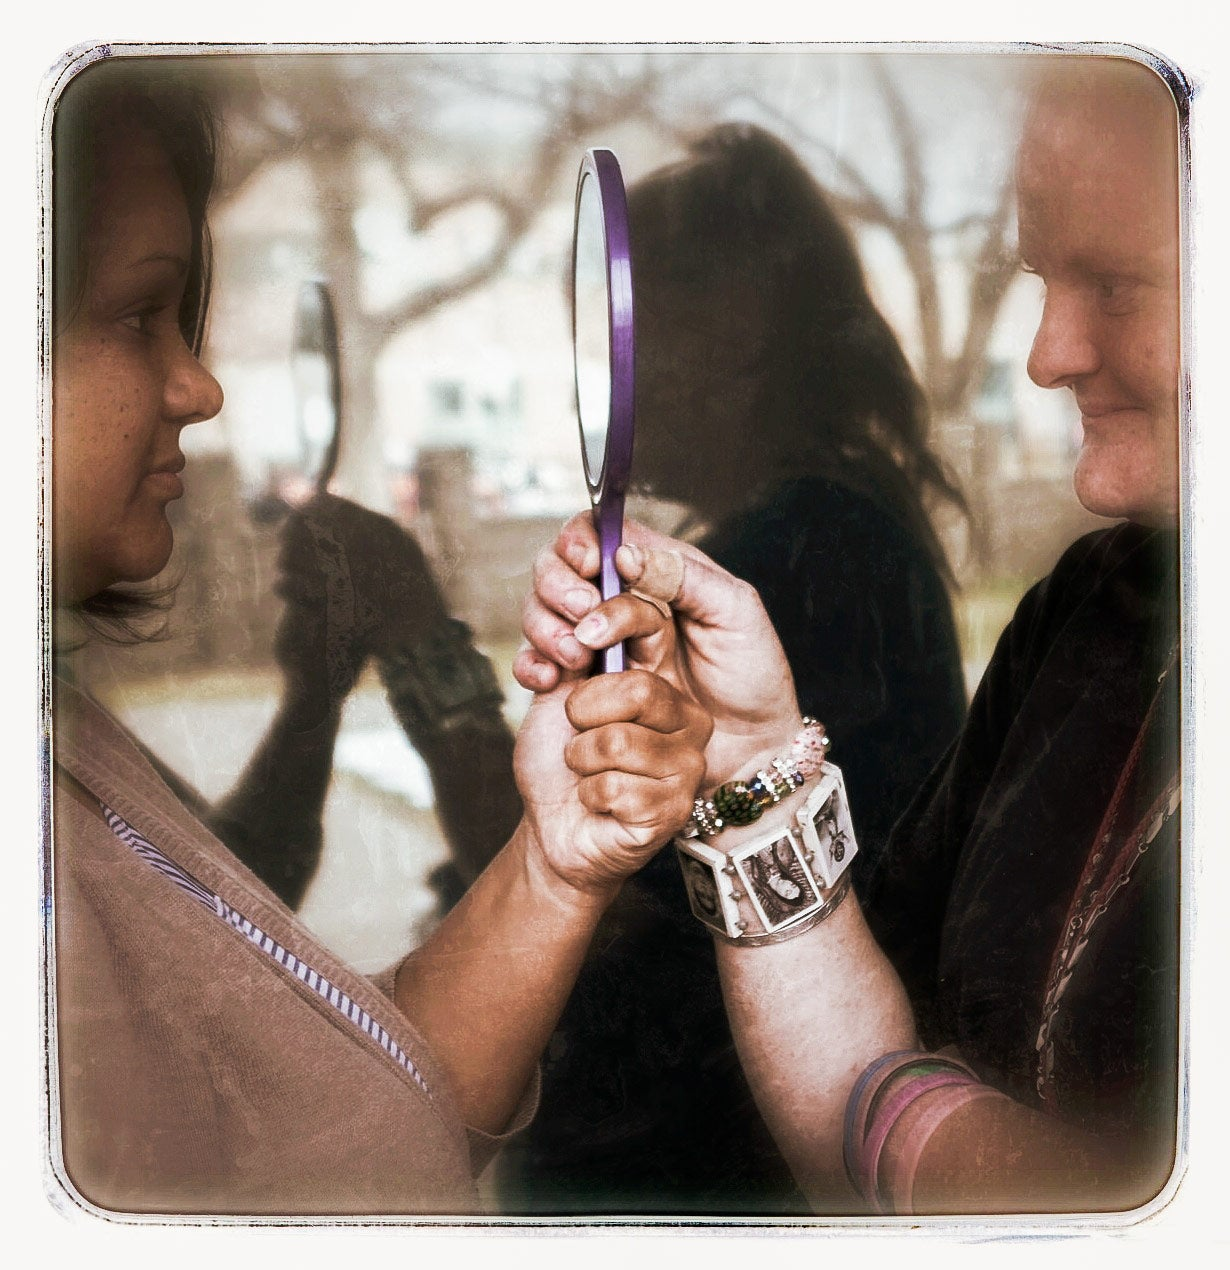 Two women hold a handheld mirror. This image appears in the book EXPOSURE: Homelessness through the lens of art & poetry.